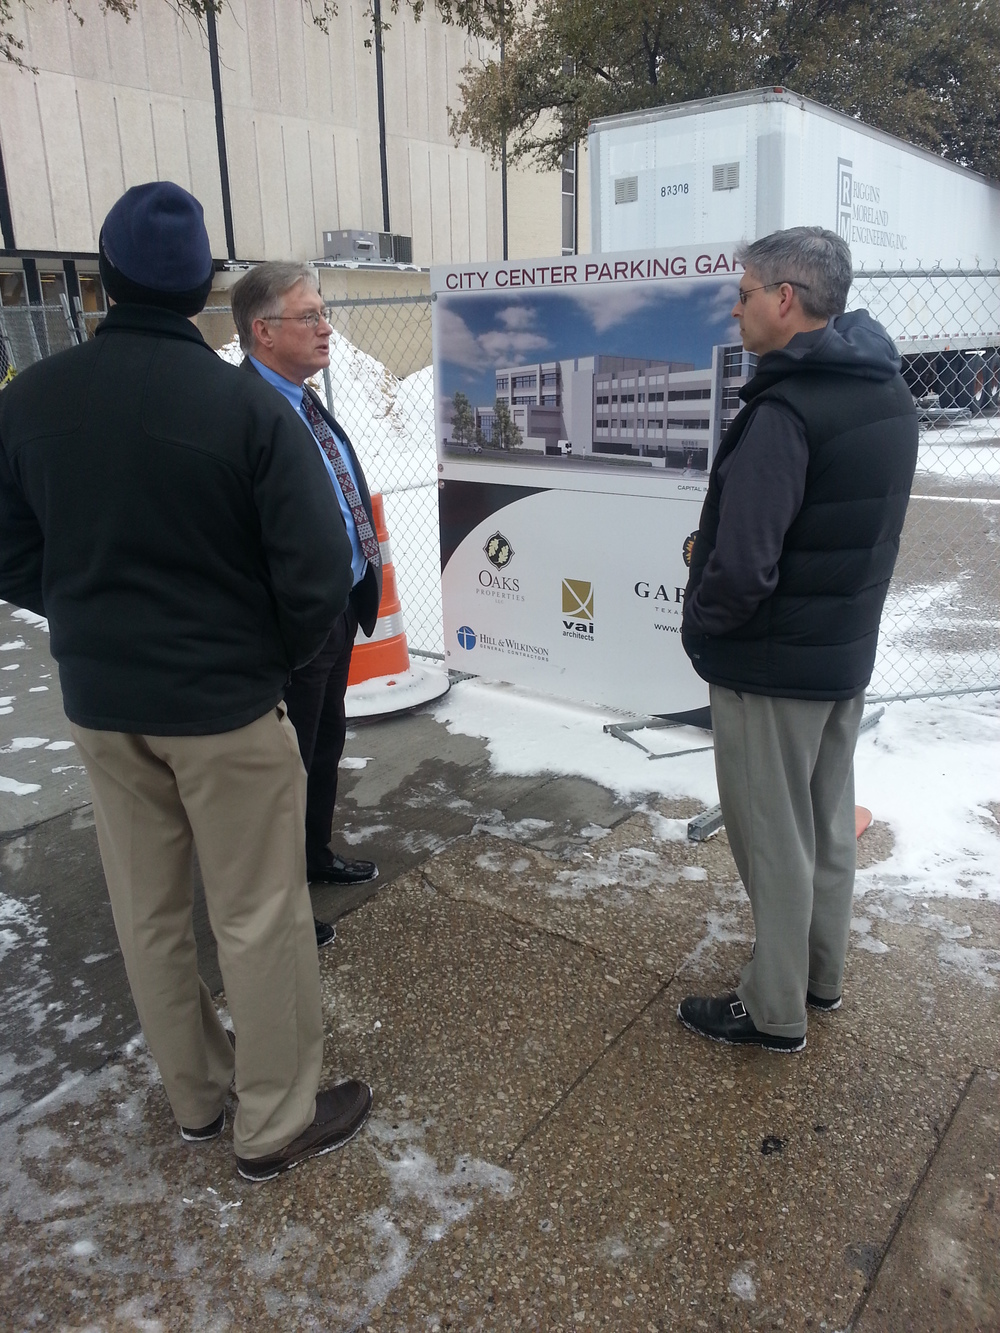 Mayor Athas giving Chuck and Jim an overview of the City Center development efforts.